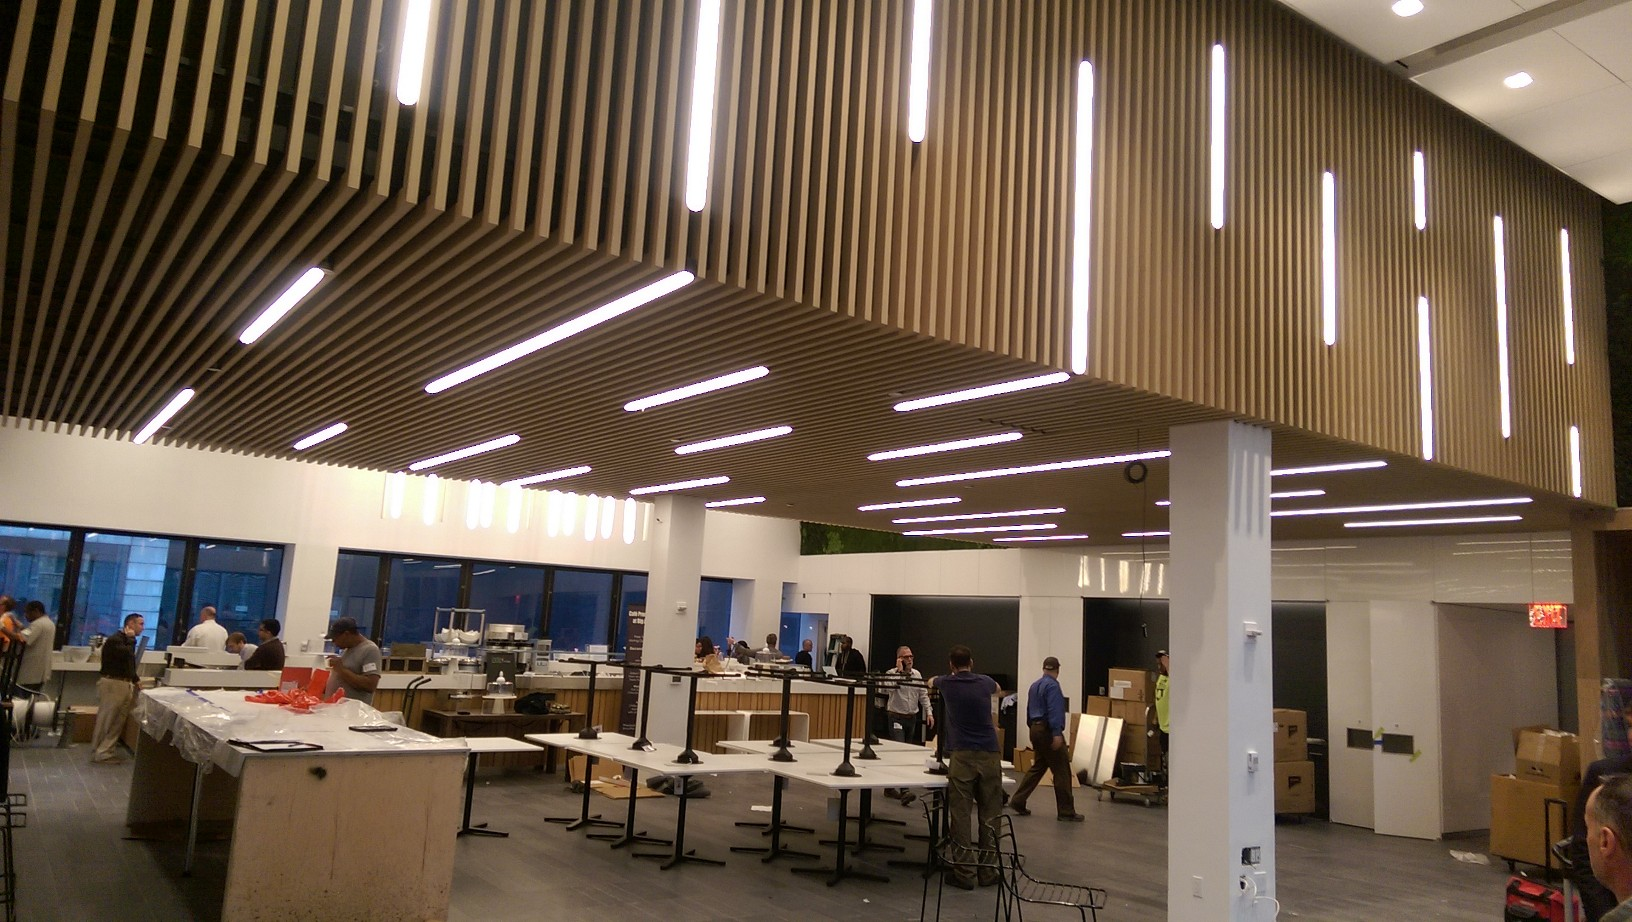 Accent metal ceilings and walls